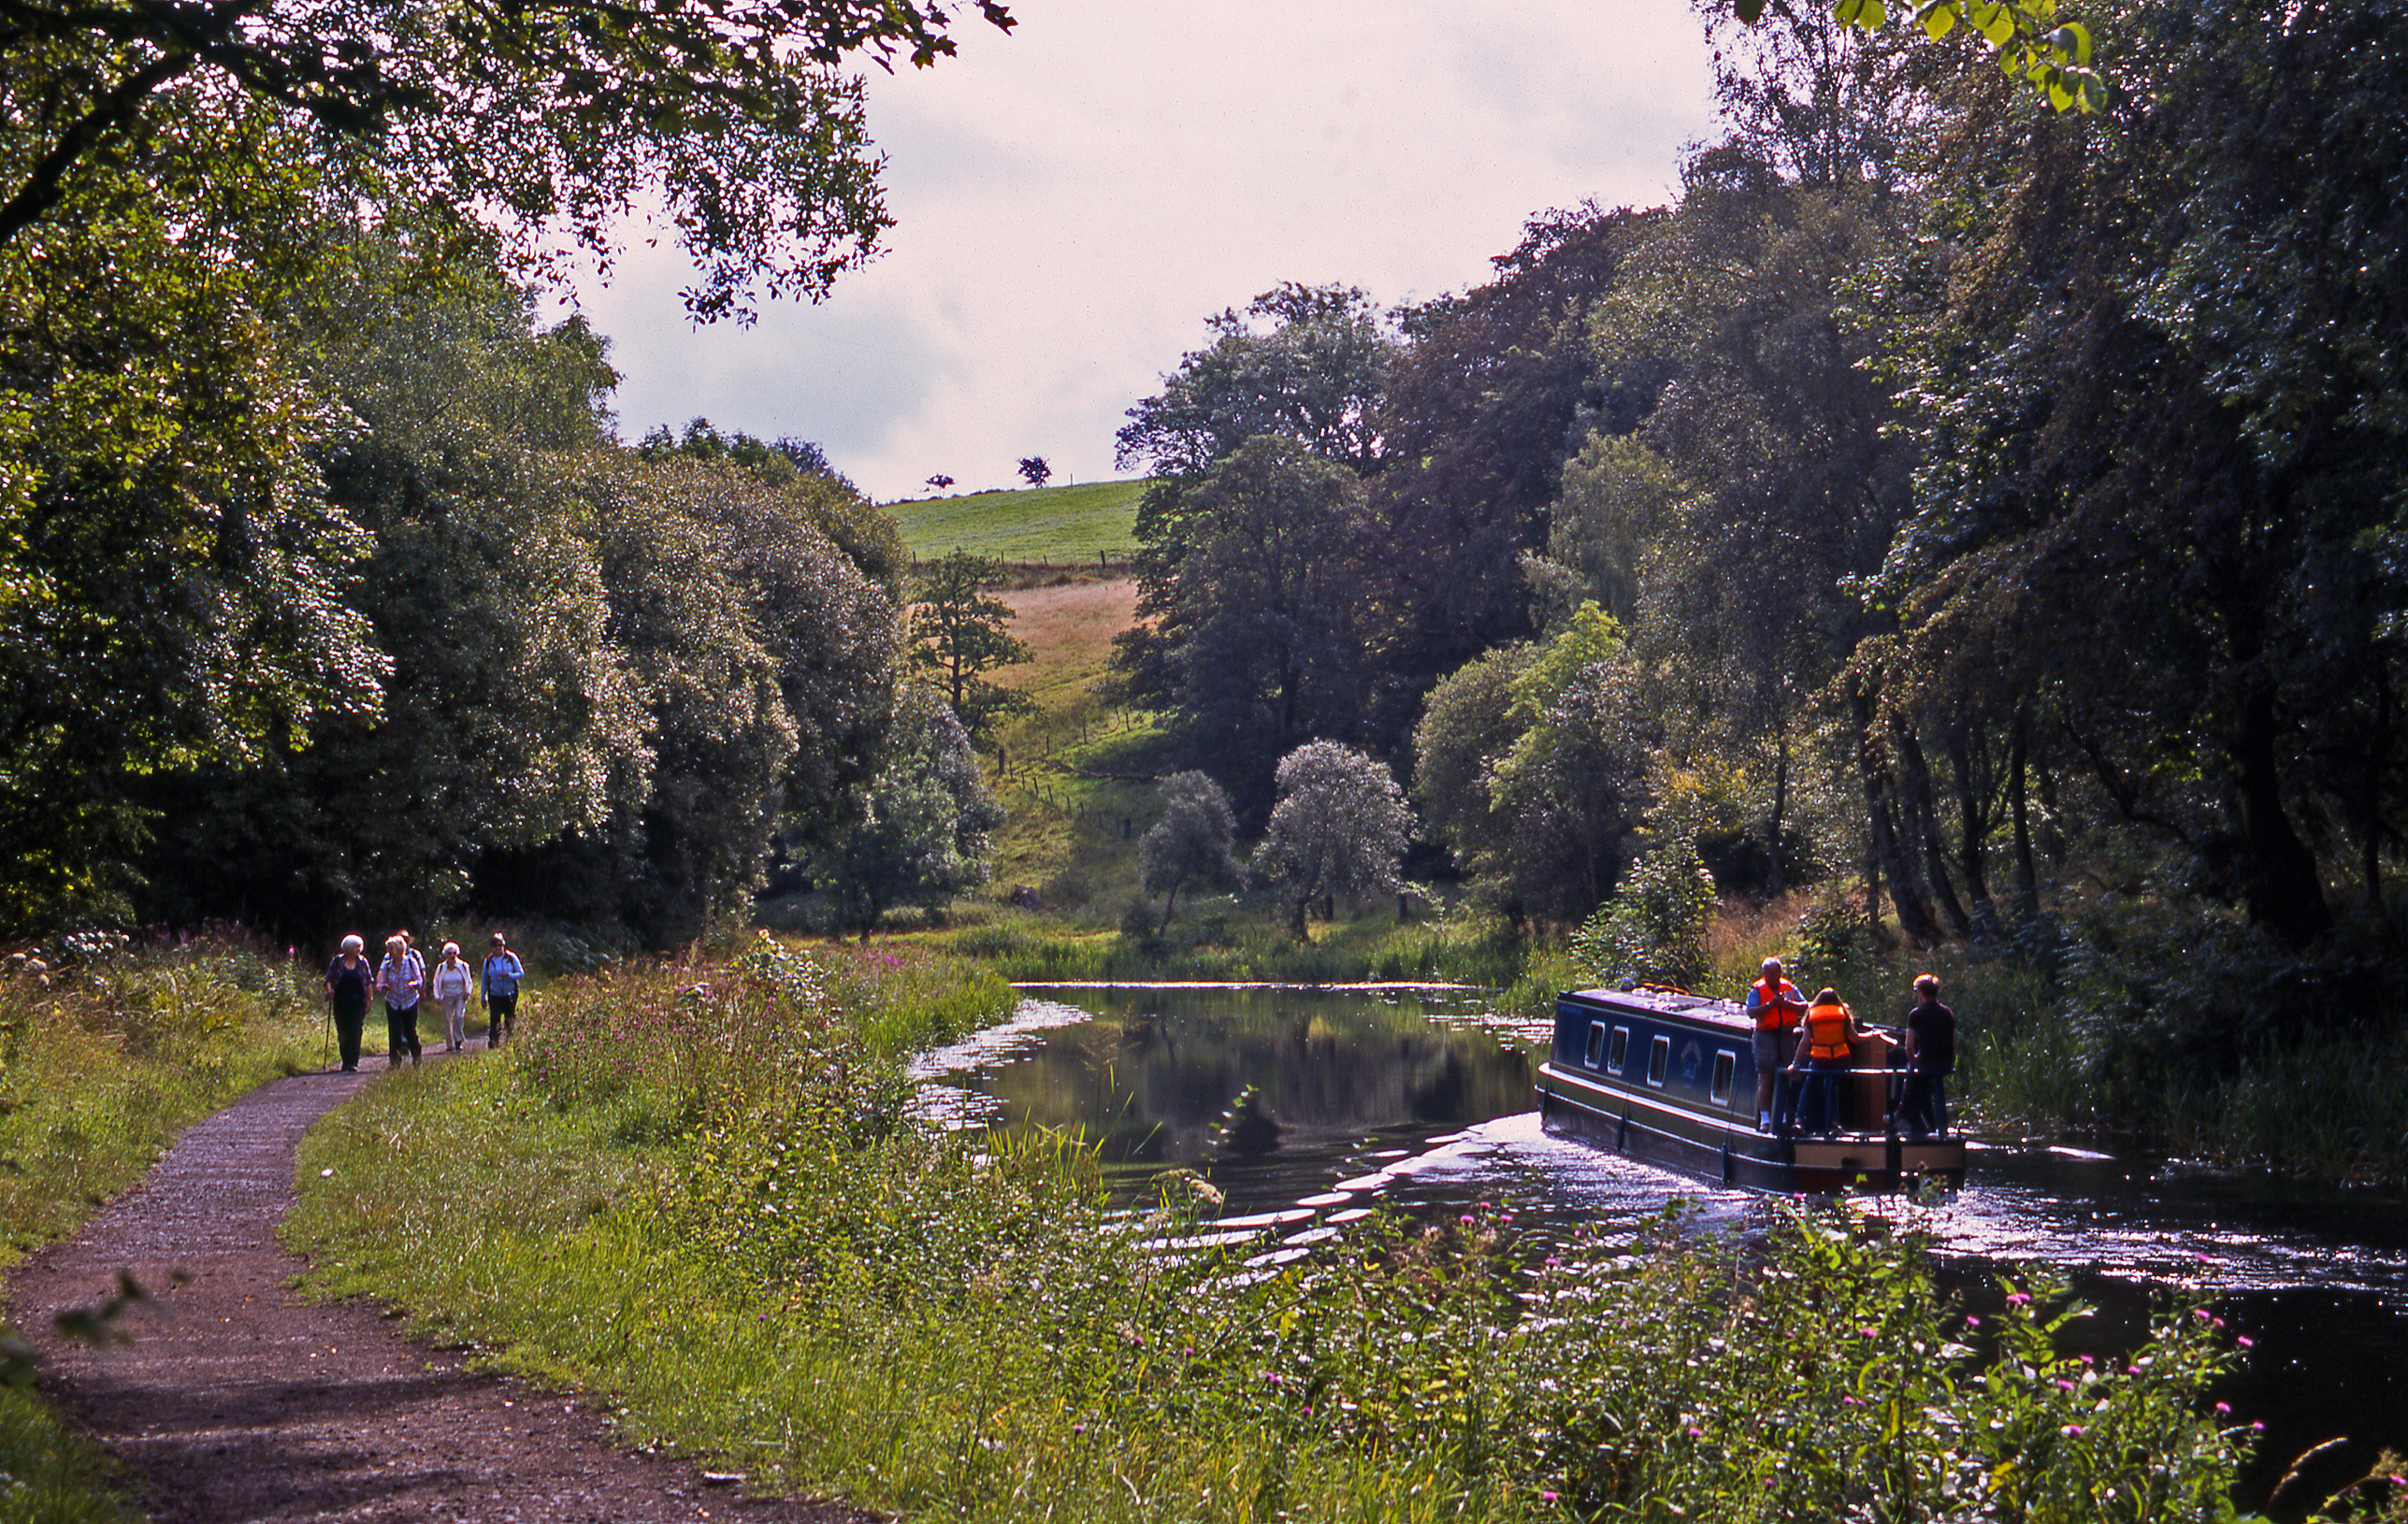 The Forth and Clyde Canal between Kilsyth and Twechar - Hamish Brown